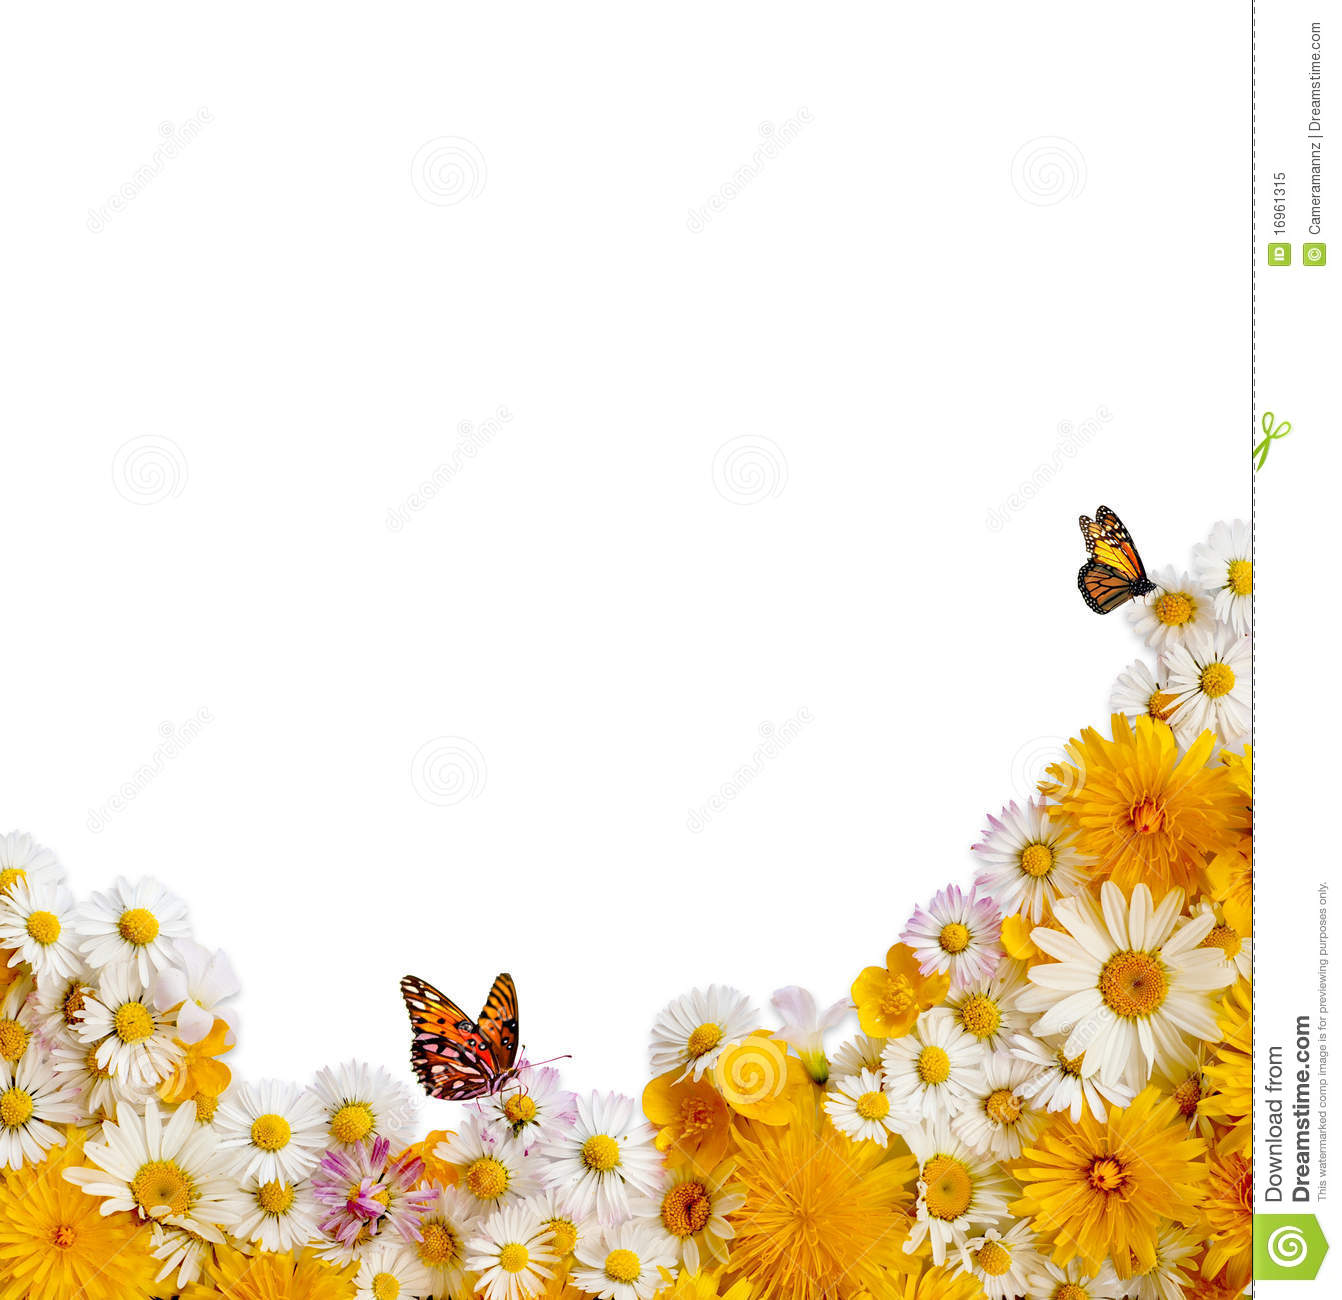 Spring Flower Border Stock Image Image Of Butterfly 16961315